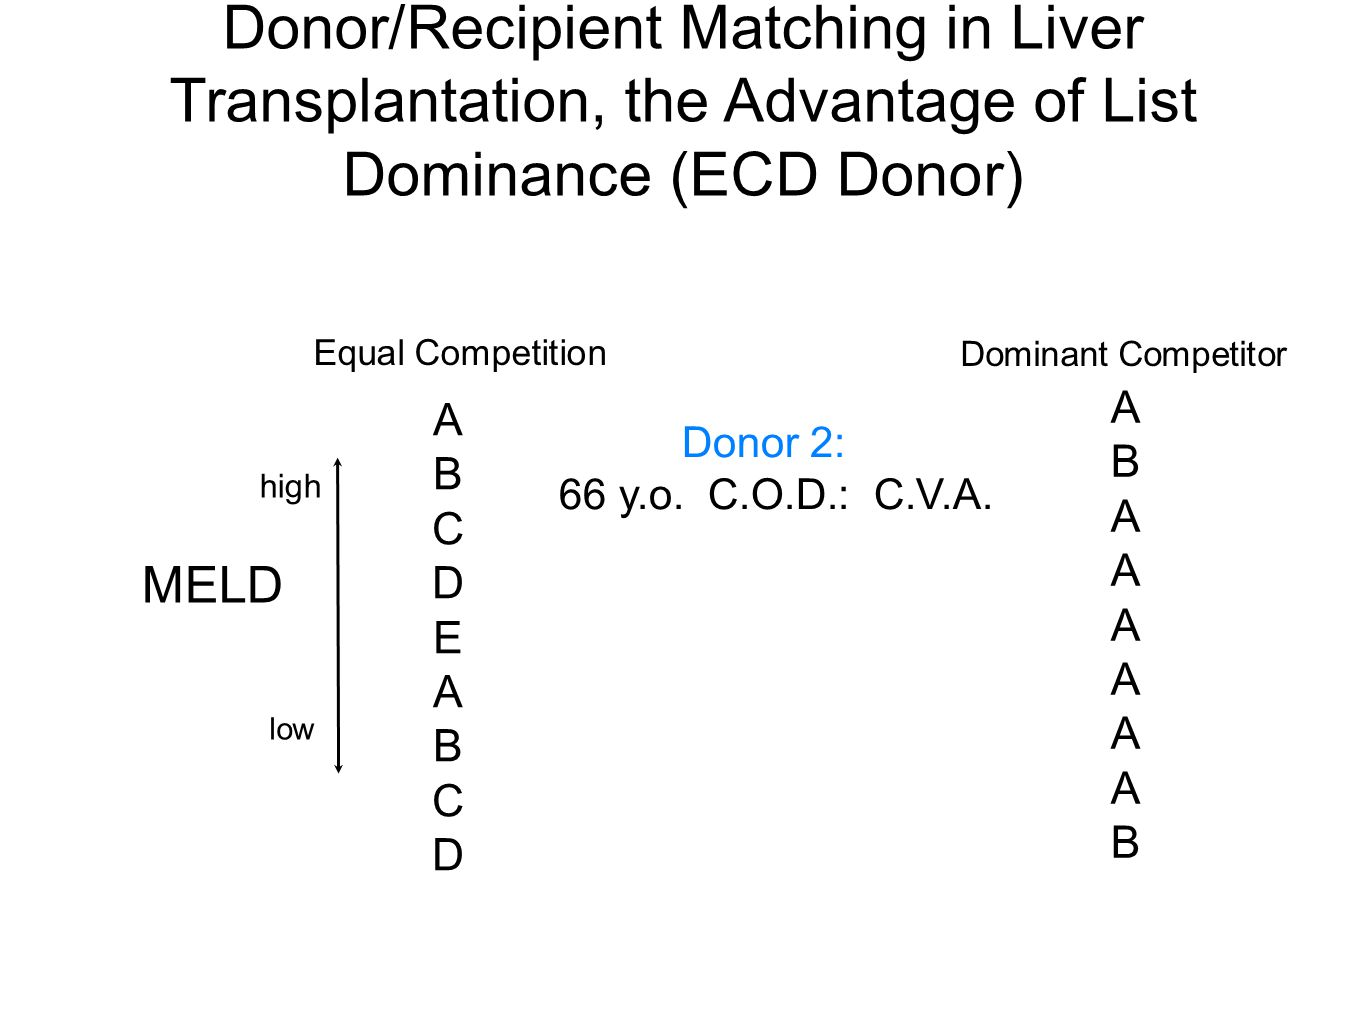 Donor/Recipient Matching in Liver Transplantation, the Advantage of List Dominance (ECD Donor) Donor 2: 66 y.o.